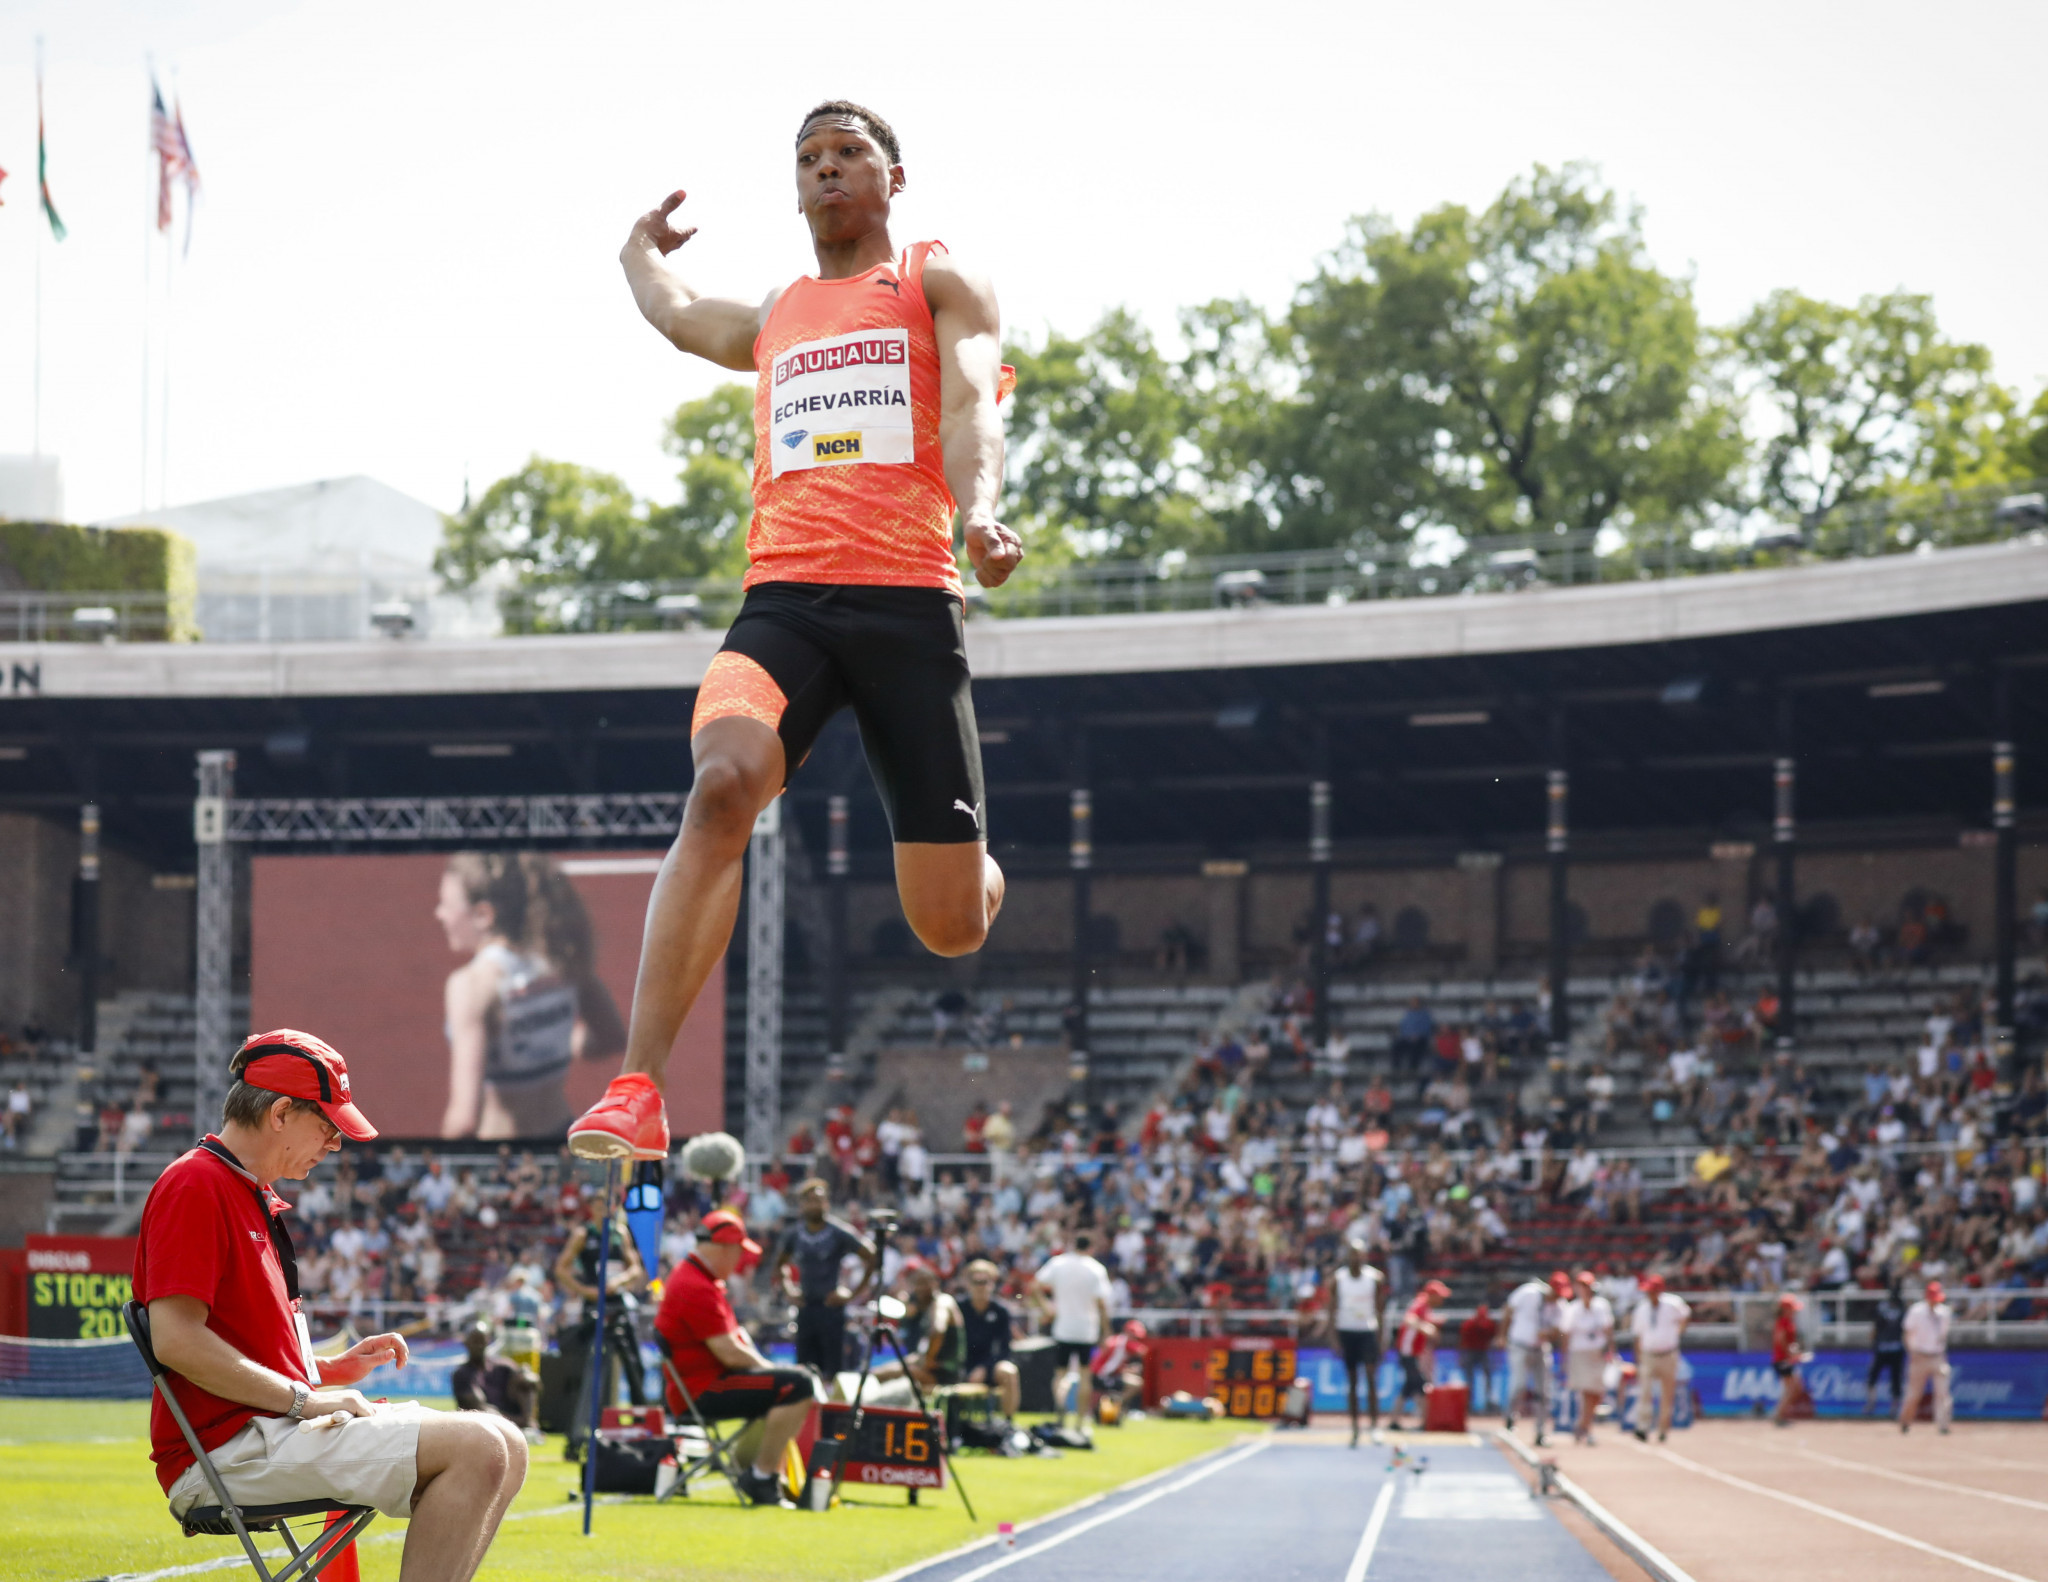 Juan Miguel Echevarria of Cuba produced an extraordinary long jump effort at last year's IAAF Diamond League meeting in Stockholm - and he's back again with records in mind ©Getty Images